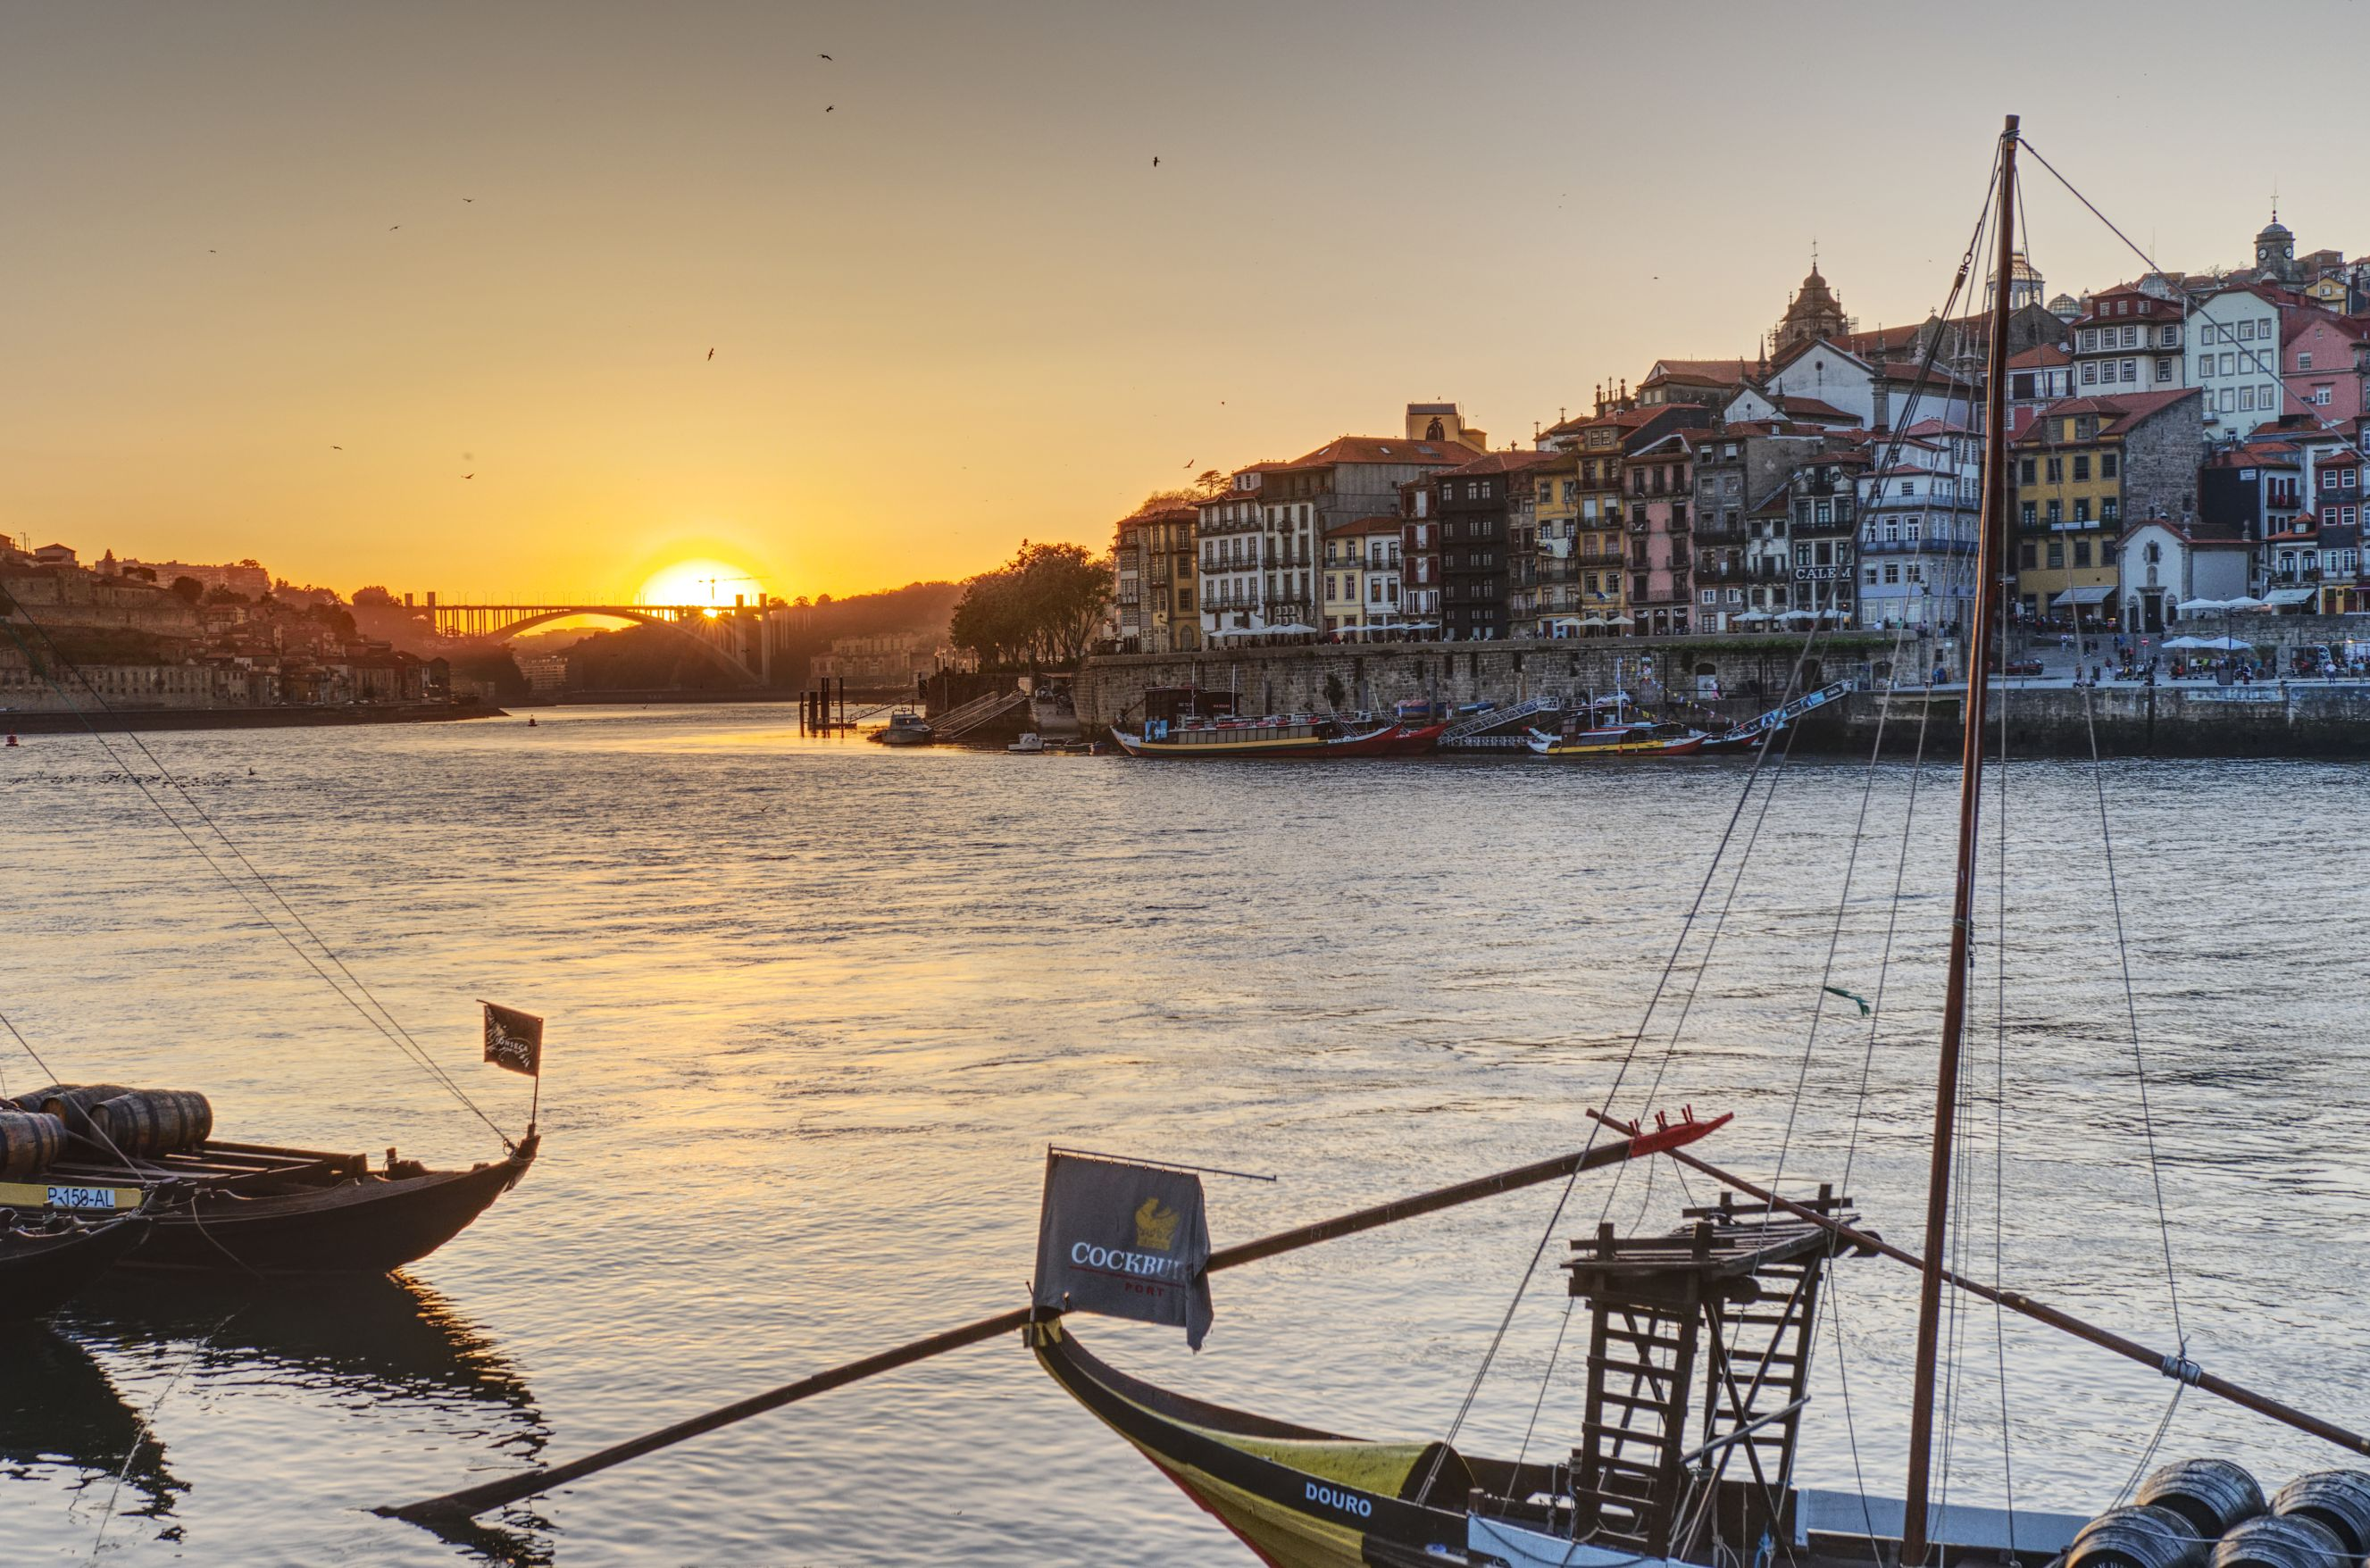 The sun goes down over the sea, in the foreground one of the Douro bridges of Porto